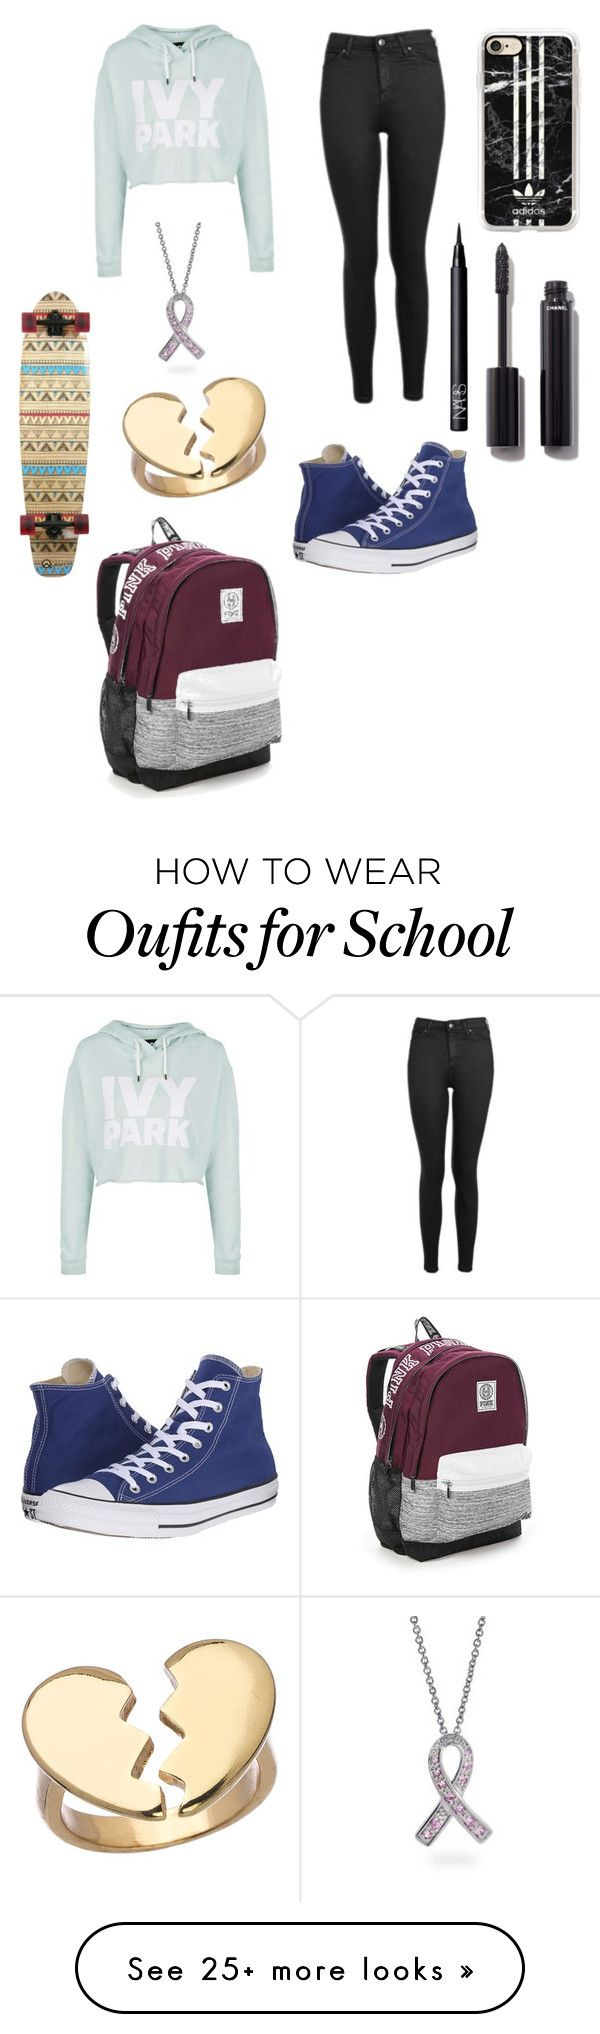 """Home from school"" by marythecheery on Polyvore featuring Topshop, Casetify, Converse, Bling Jewelry, Blu Bijoux, Chanel, NARS Cosmetics and Victoria's Secret"